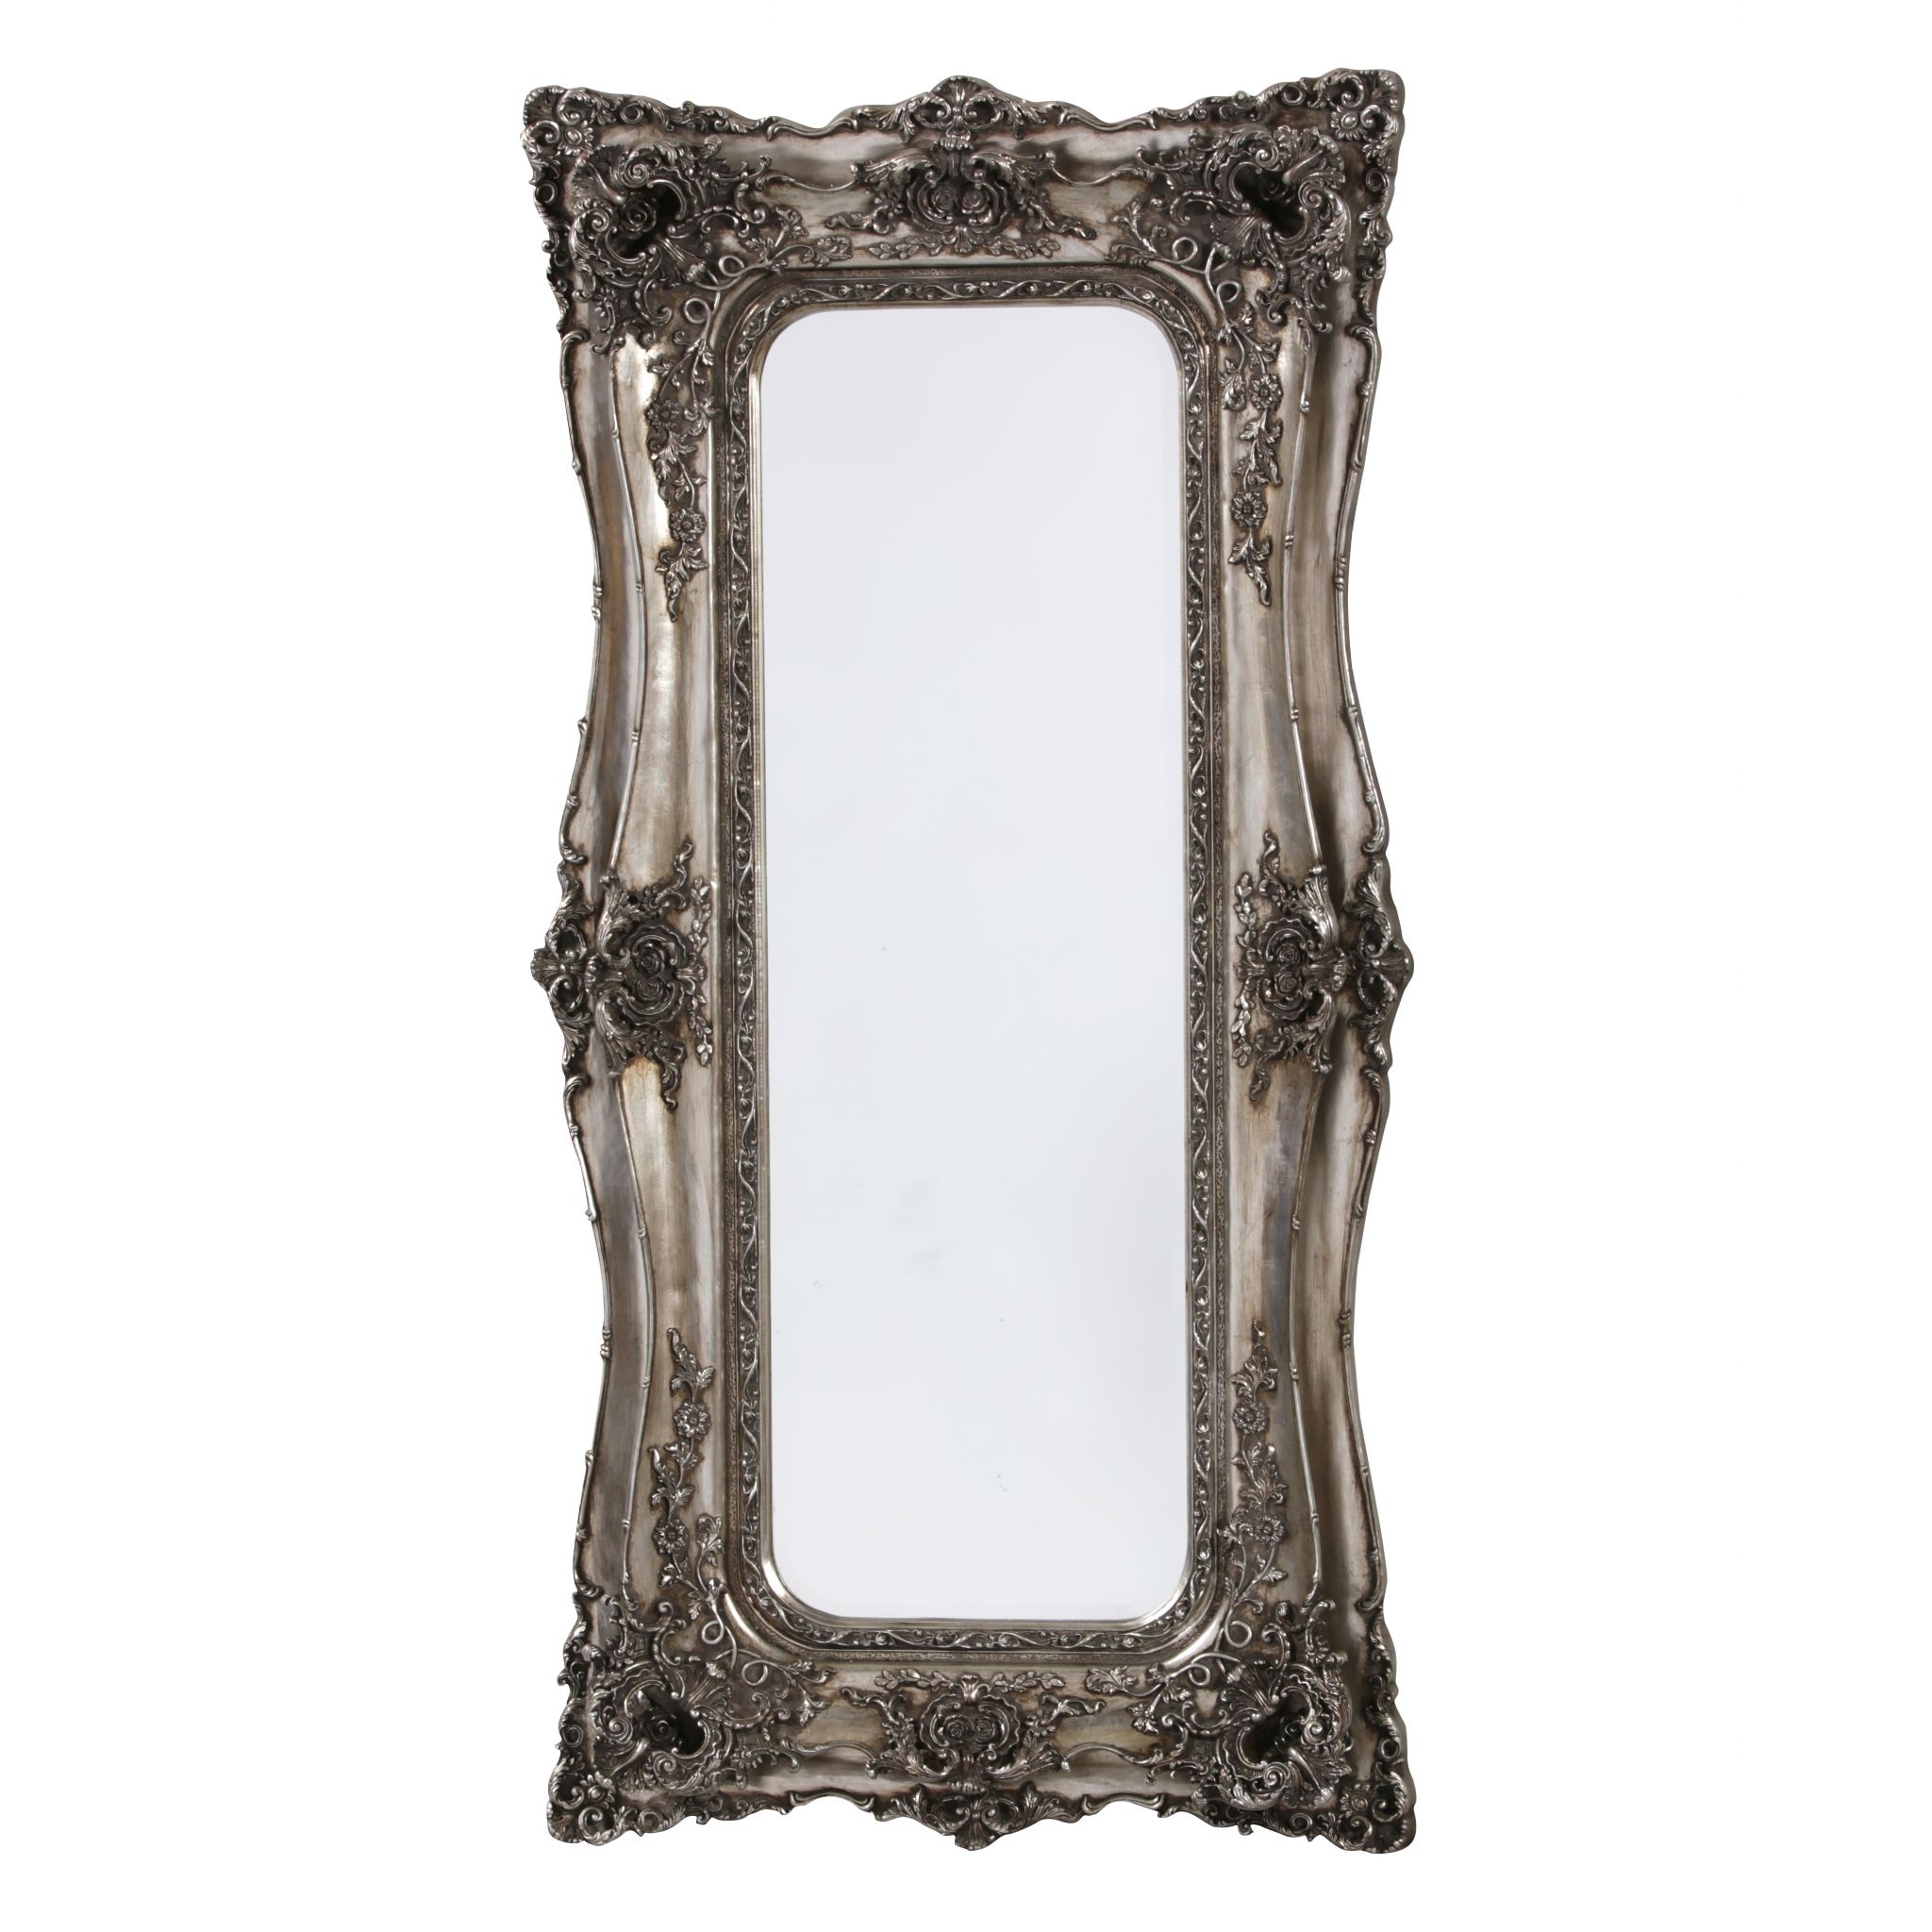 Baroque Tall Silver French Mirror Regarding Silver French Mirror (Image 4 of 15)